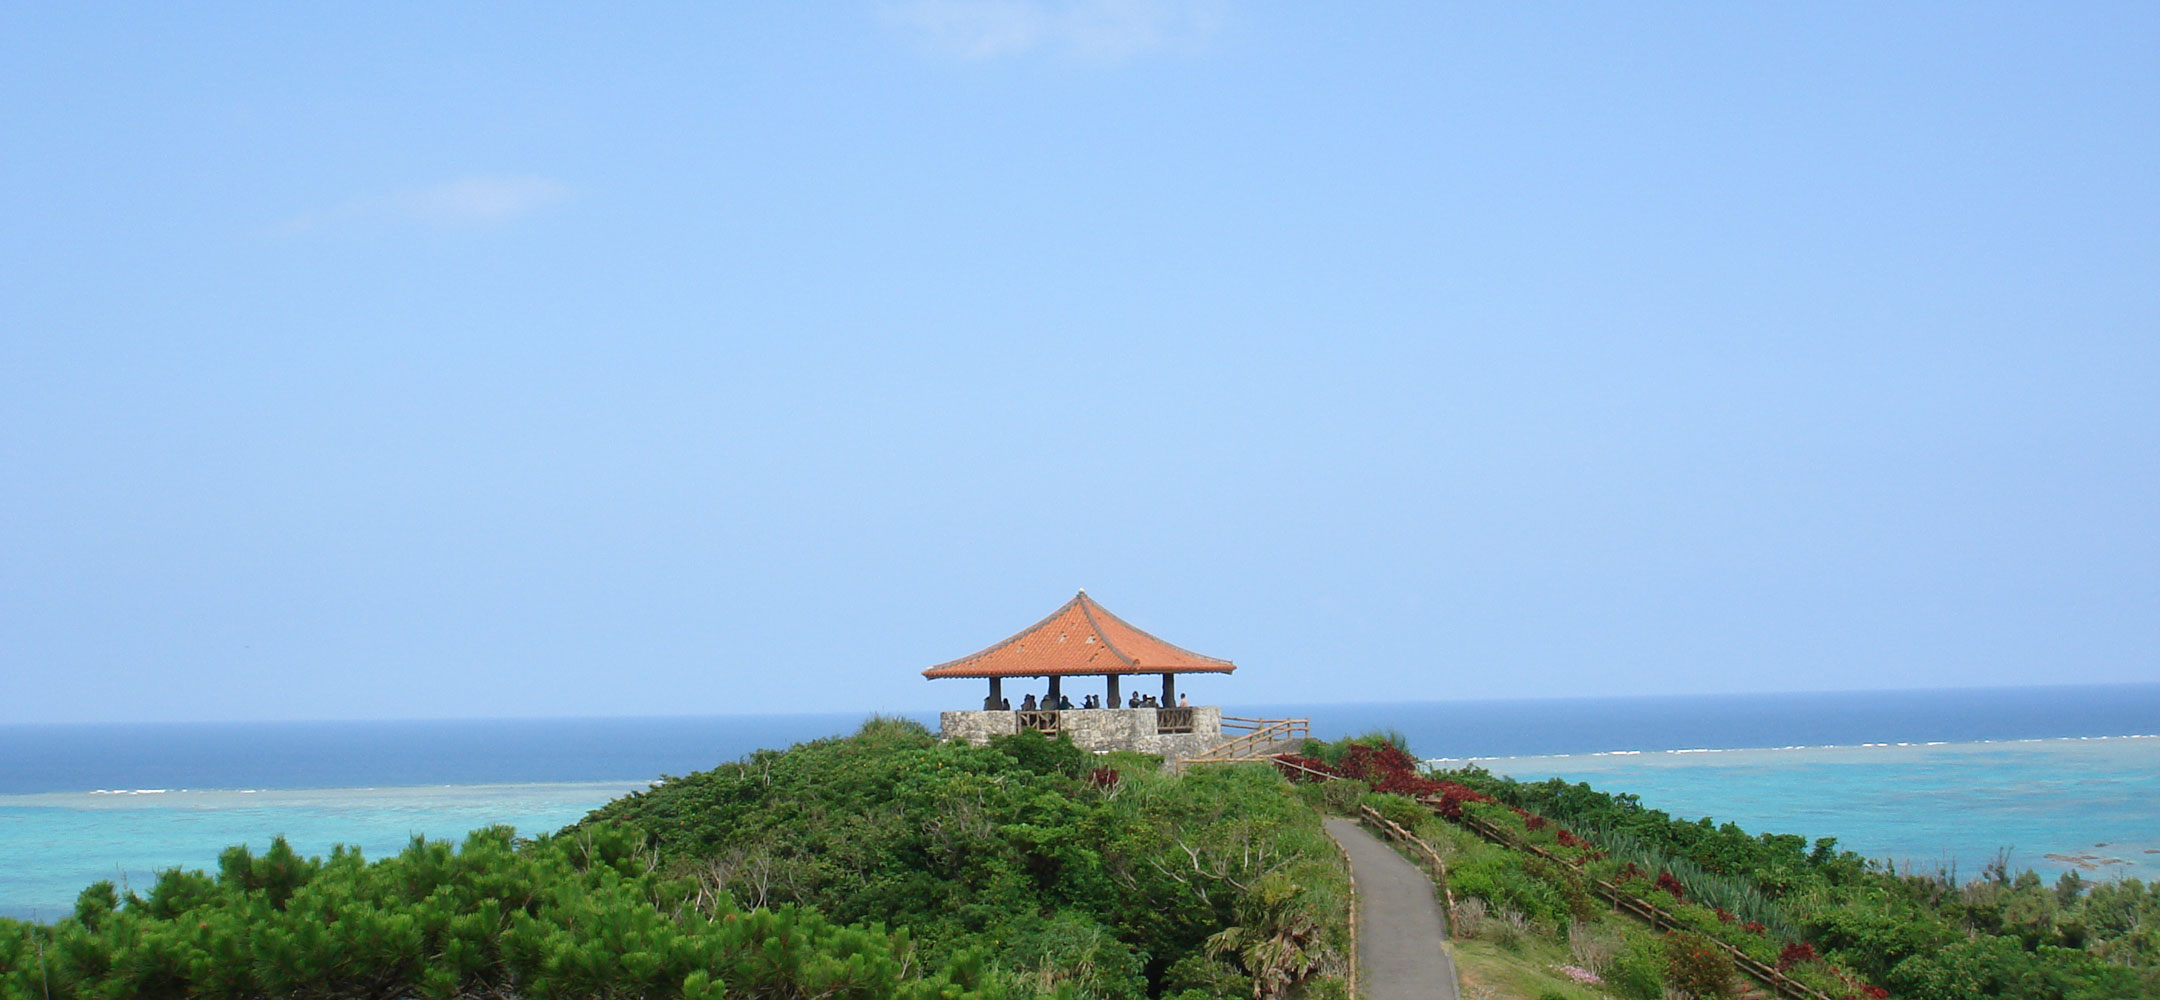 Ishigaki Beach Extension